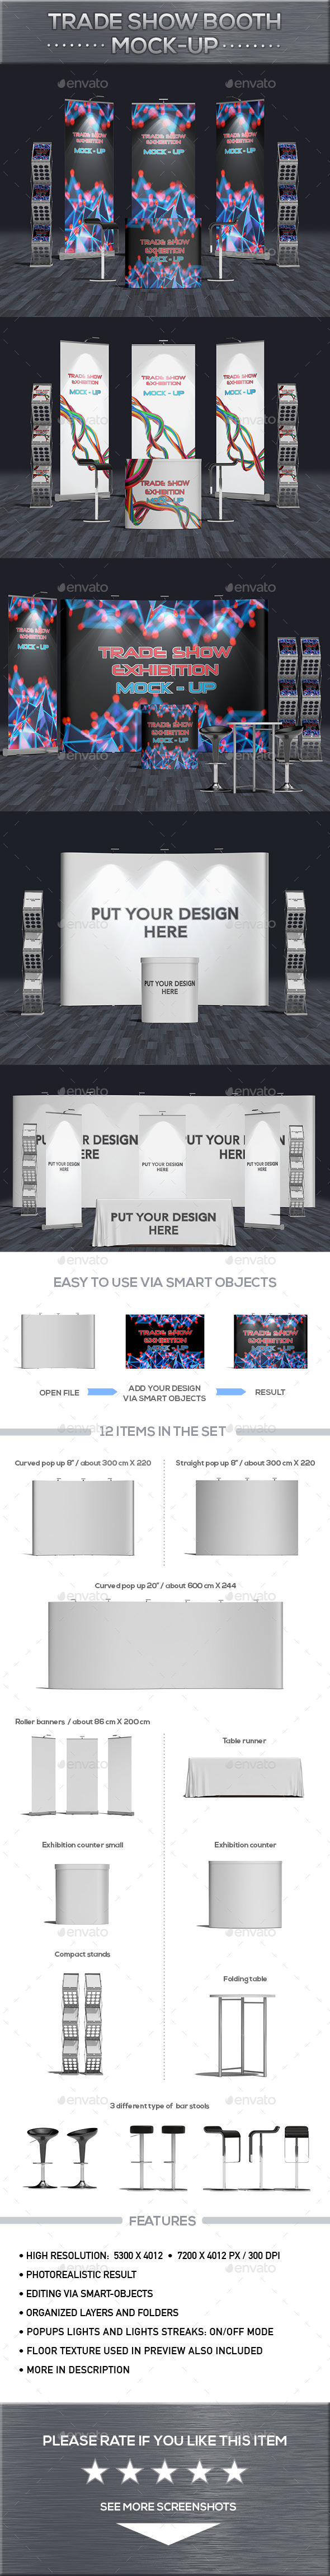 Trade Show Booth Mock-Up - Product Mock-Ups Graphics